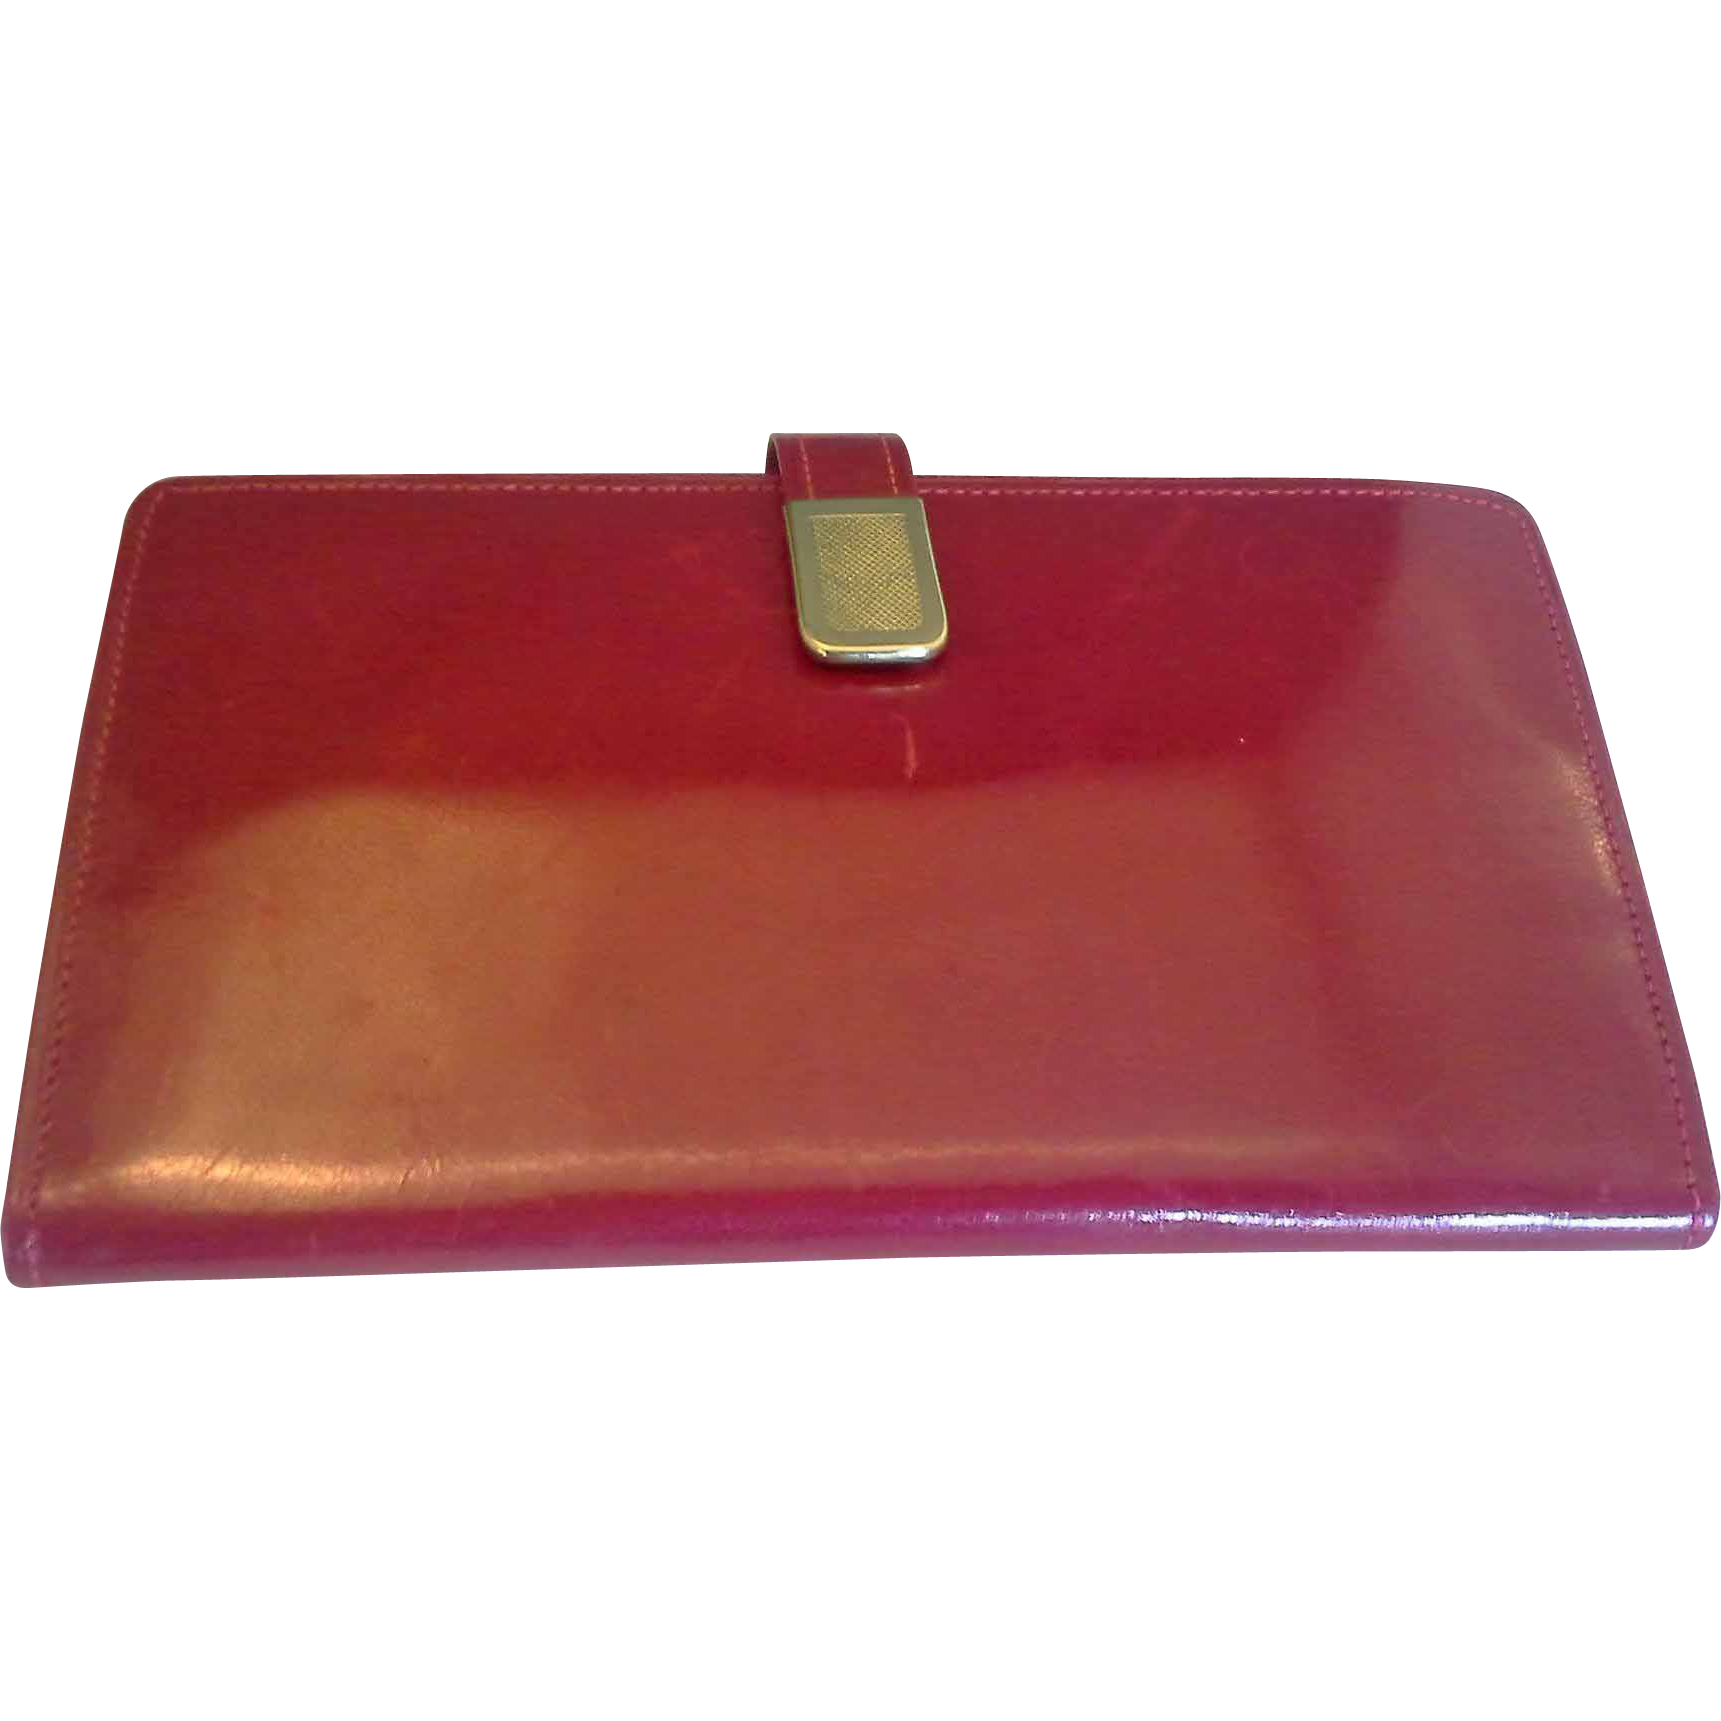 Red Patent Leather Wallet Clutch Spain